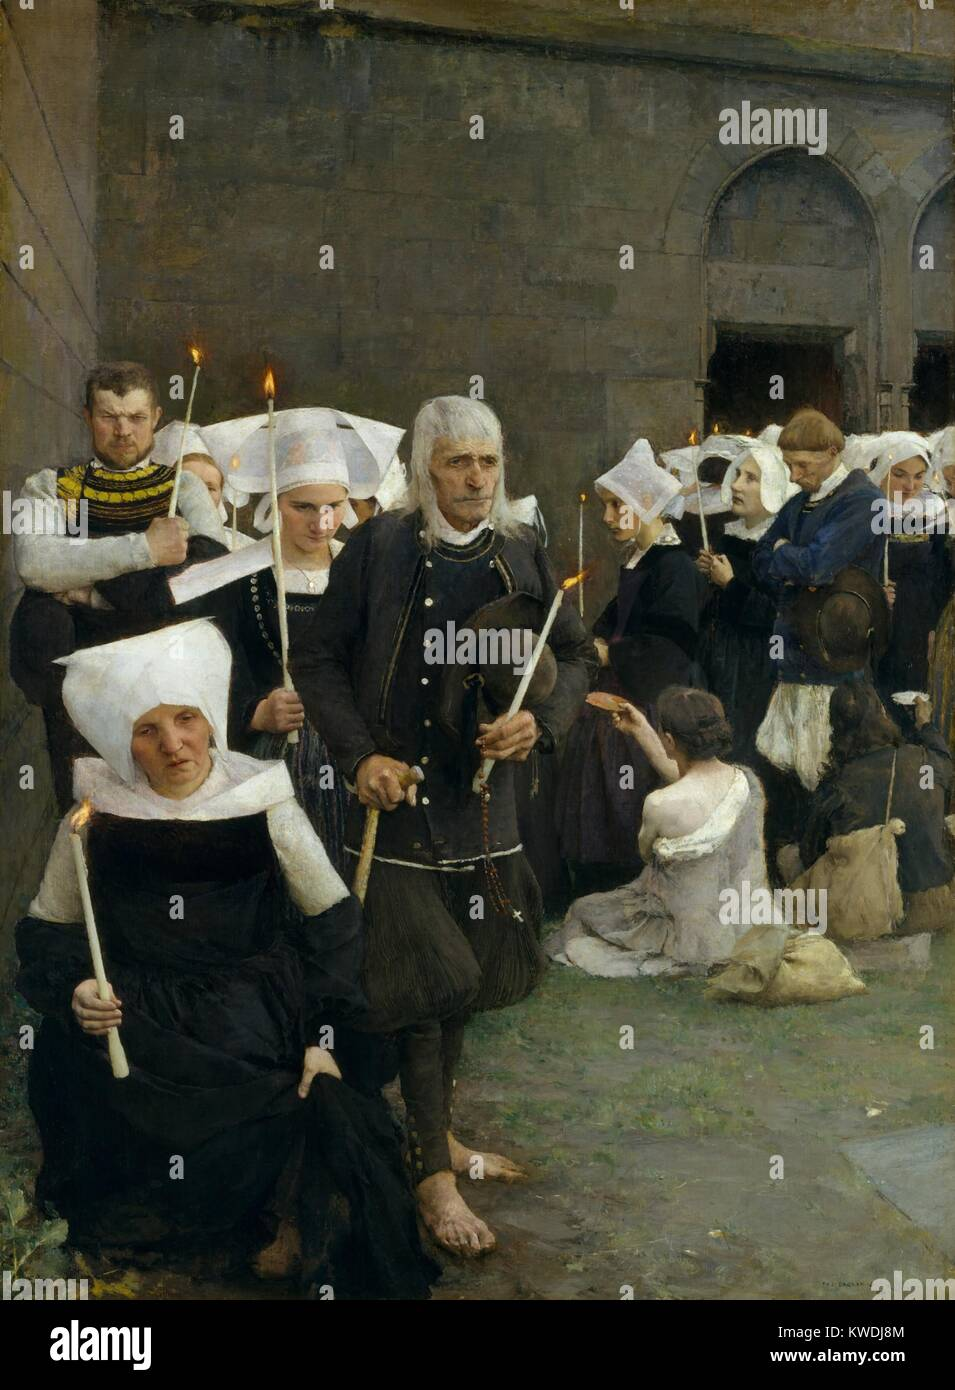 THE PARDON IN BRITTANY, by Pascal Dagnan-Bouveret 1886, French painting, oil on canvas. The traditional culture - Stock Image